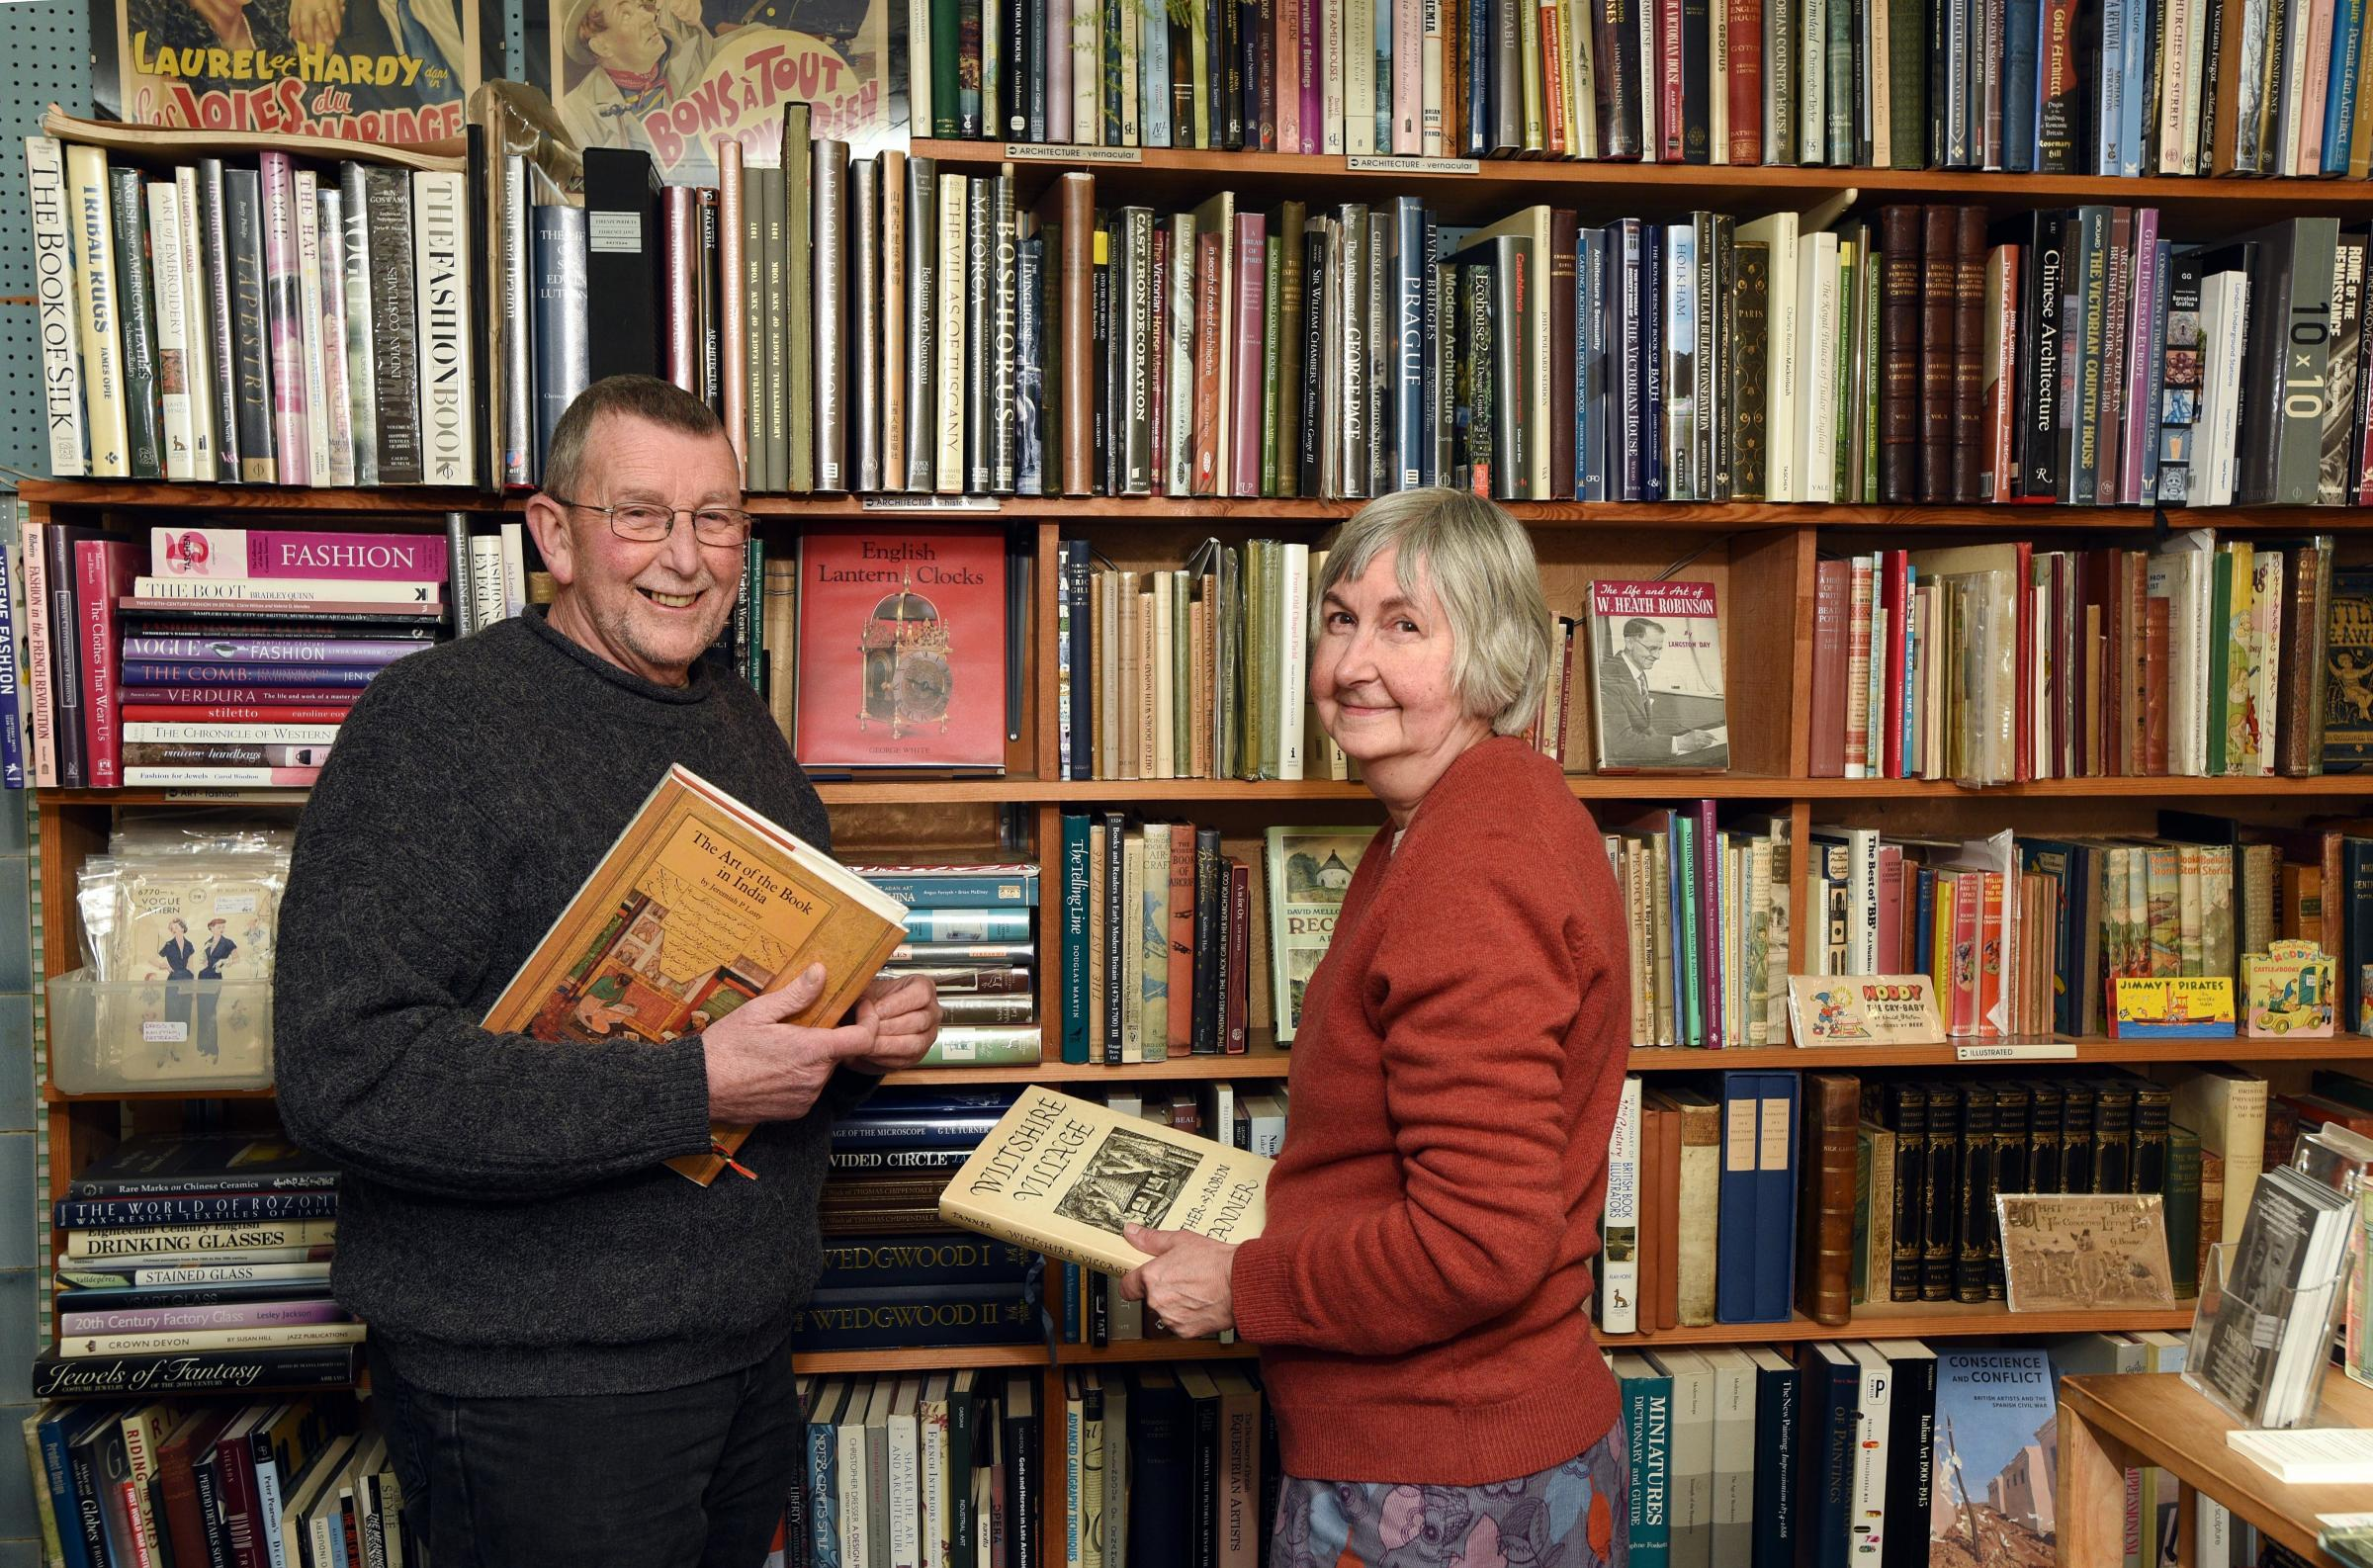 End of an era: Mike and Joy Goodenough call time on Inprint Books, in Stroud High Street, after 40 years. Picture: Simon Pizzey